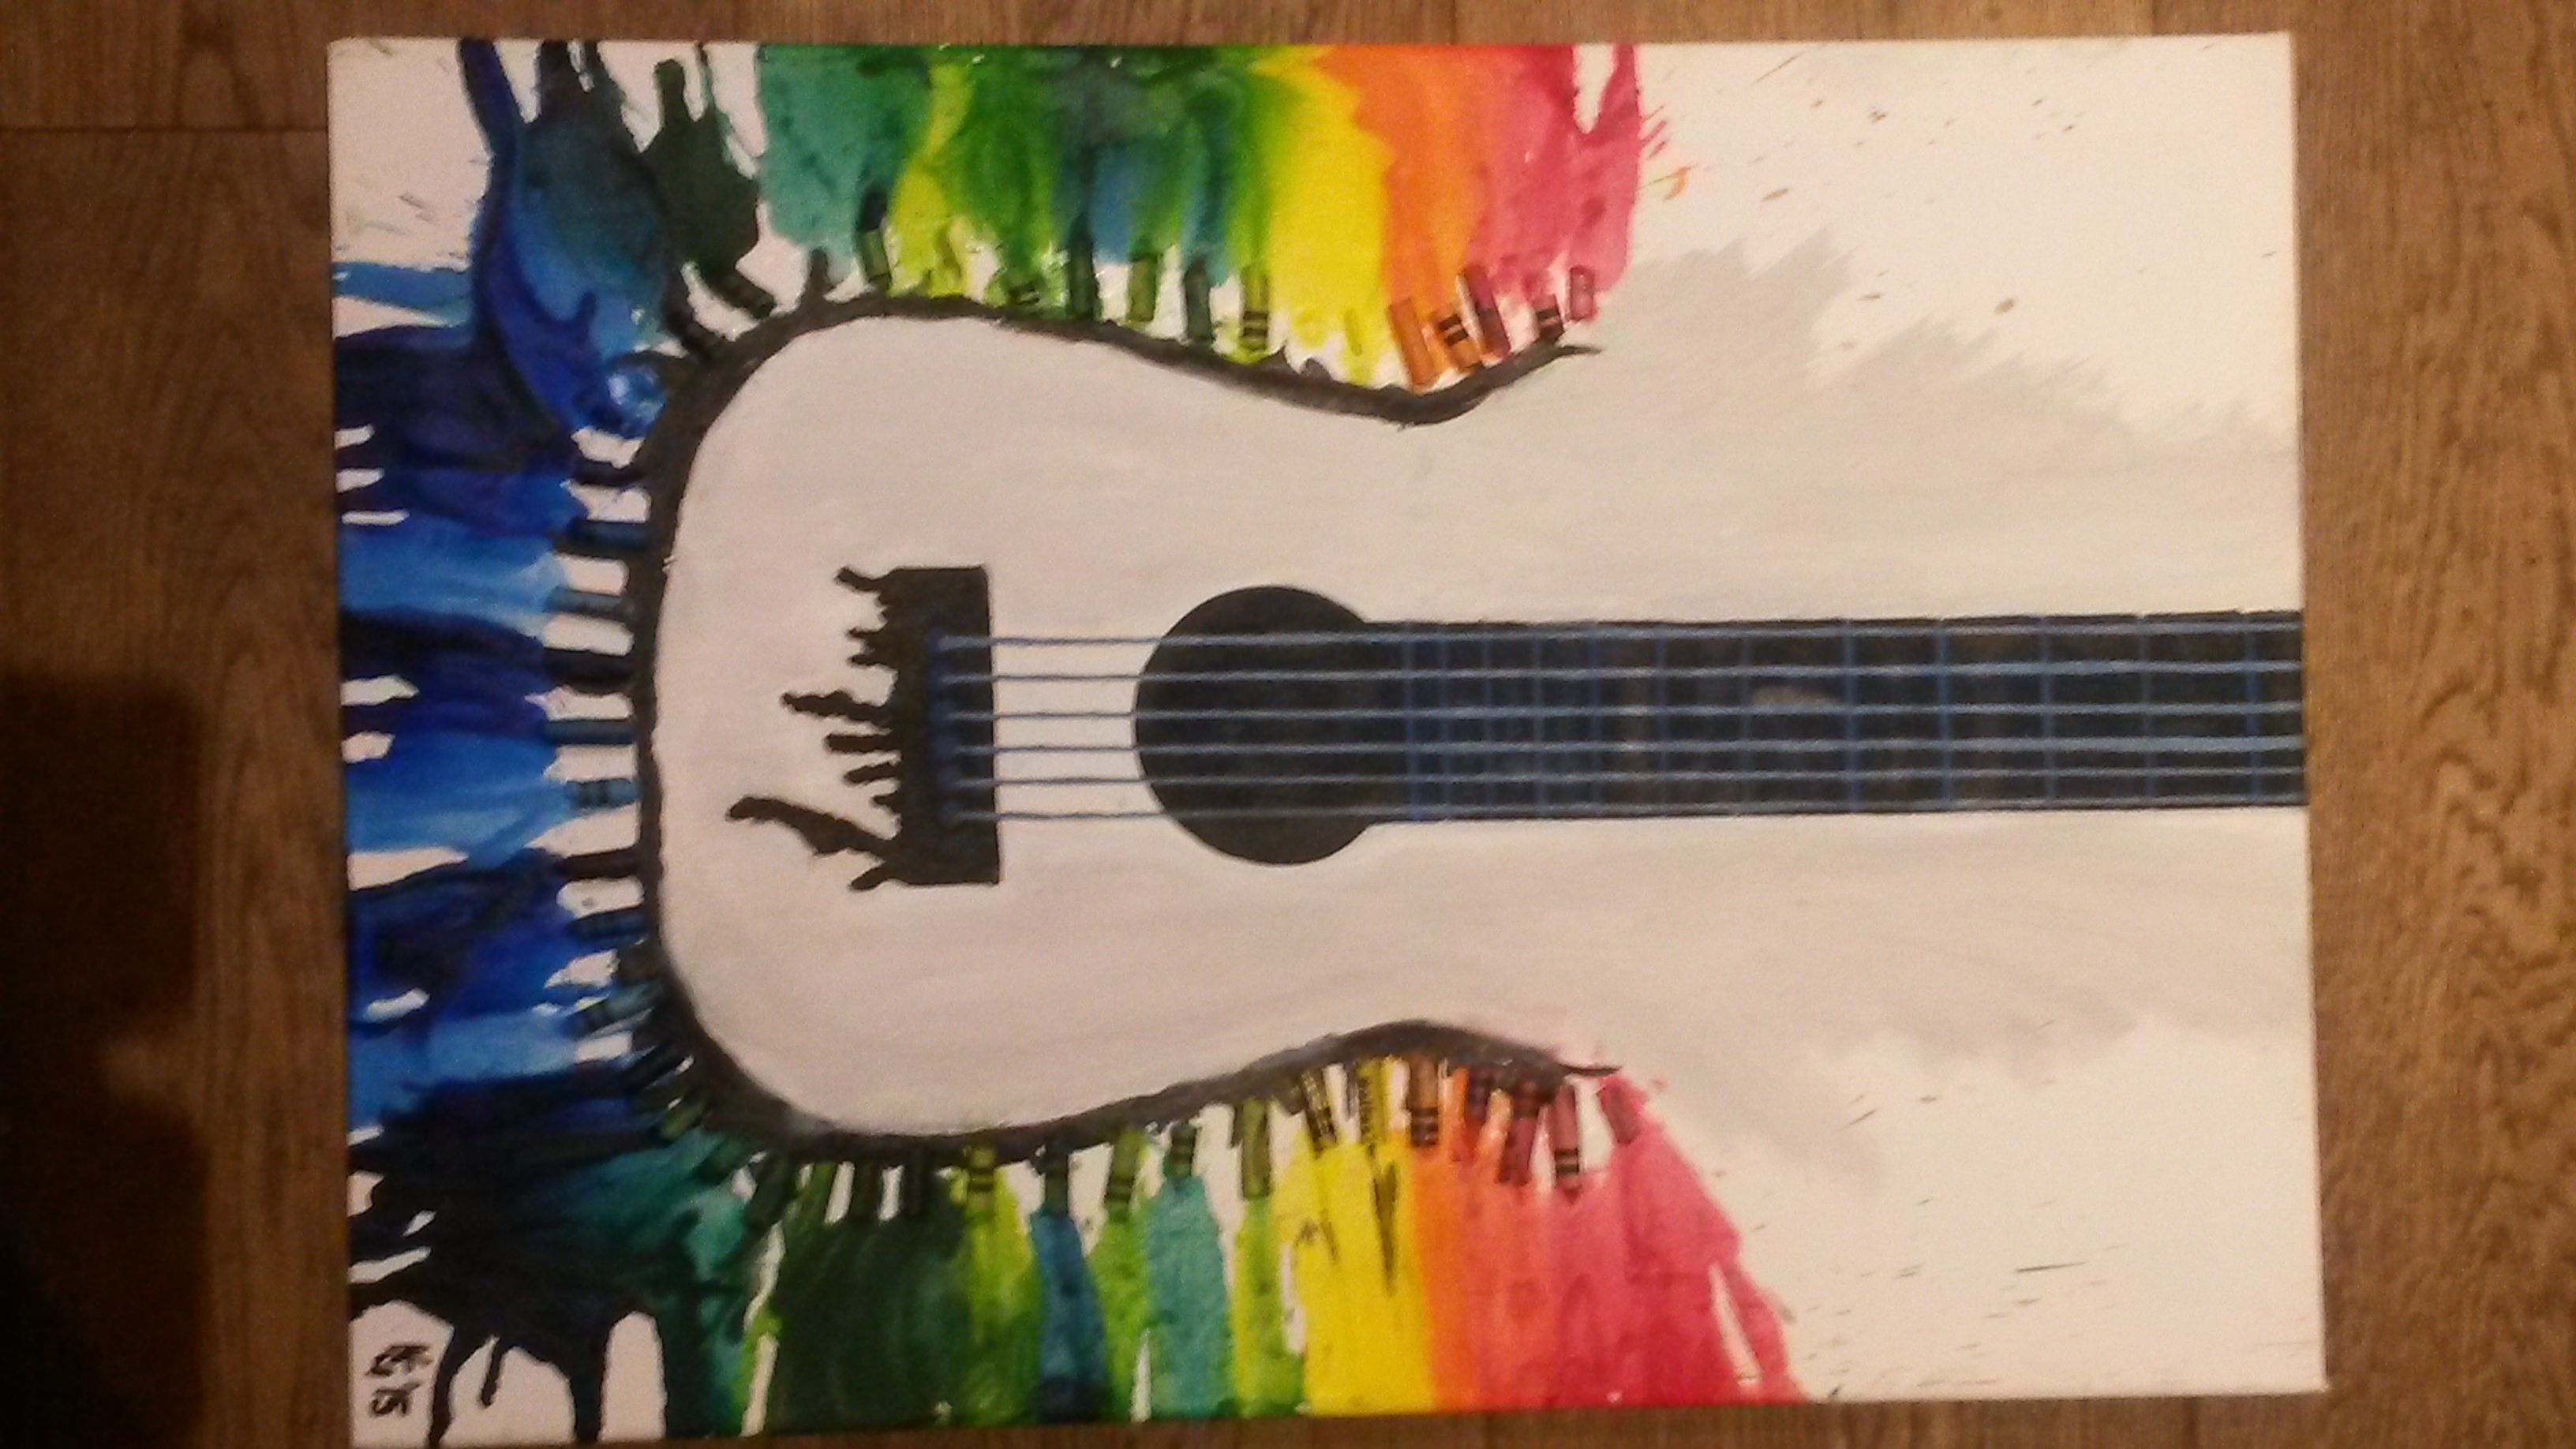 Guitar Abstract 40X60Cm Melted Crayons And Oils On Canvas 2014